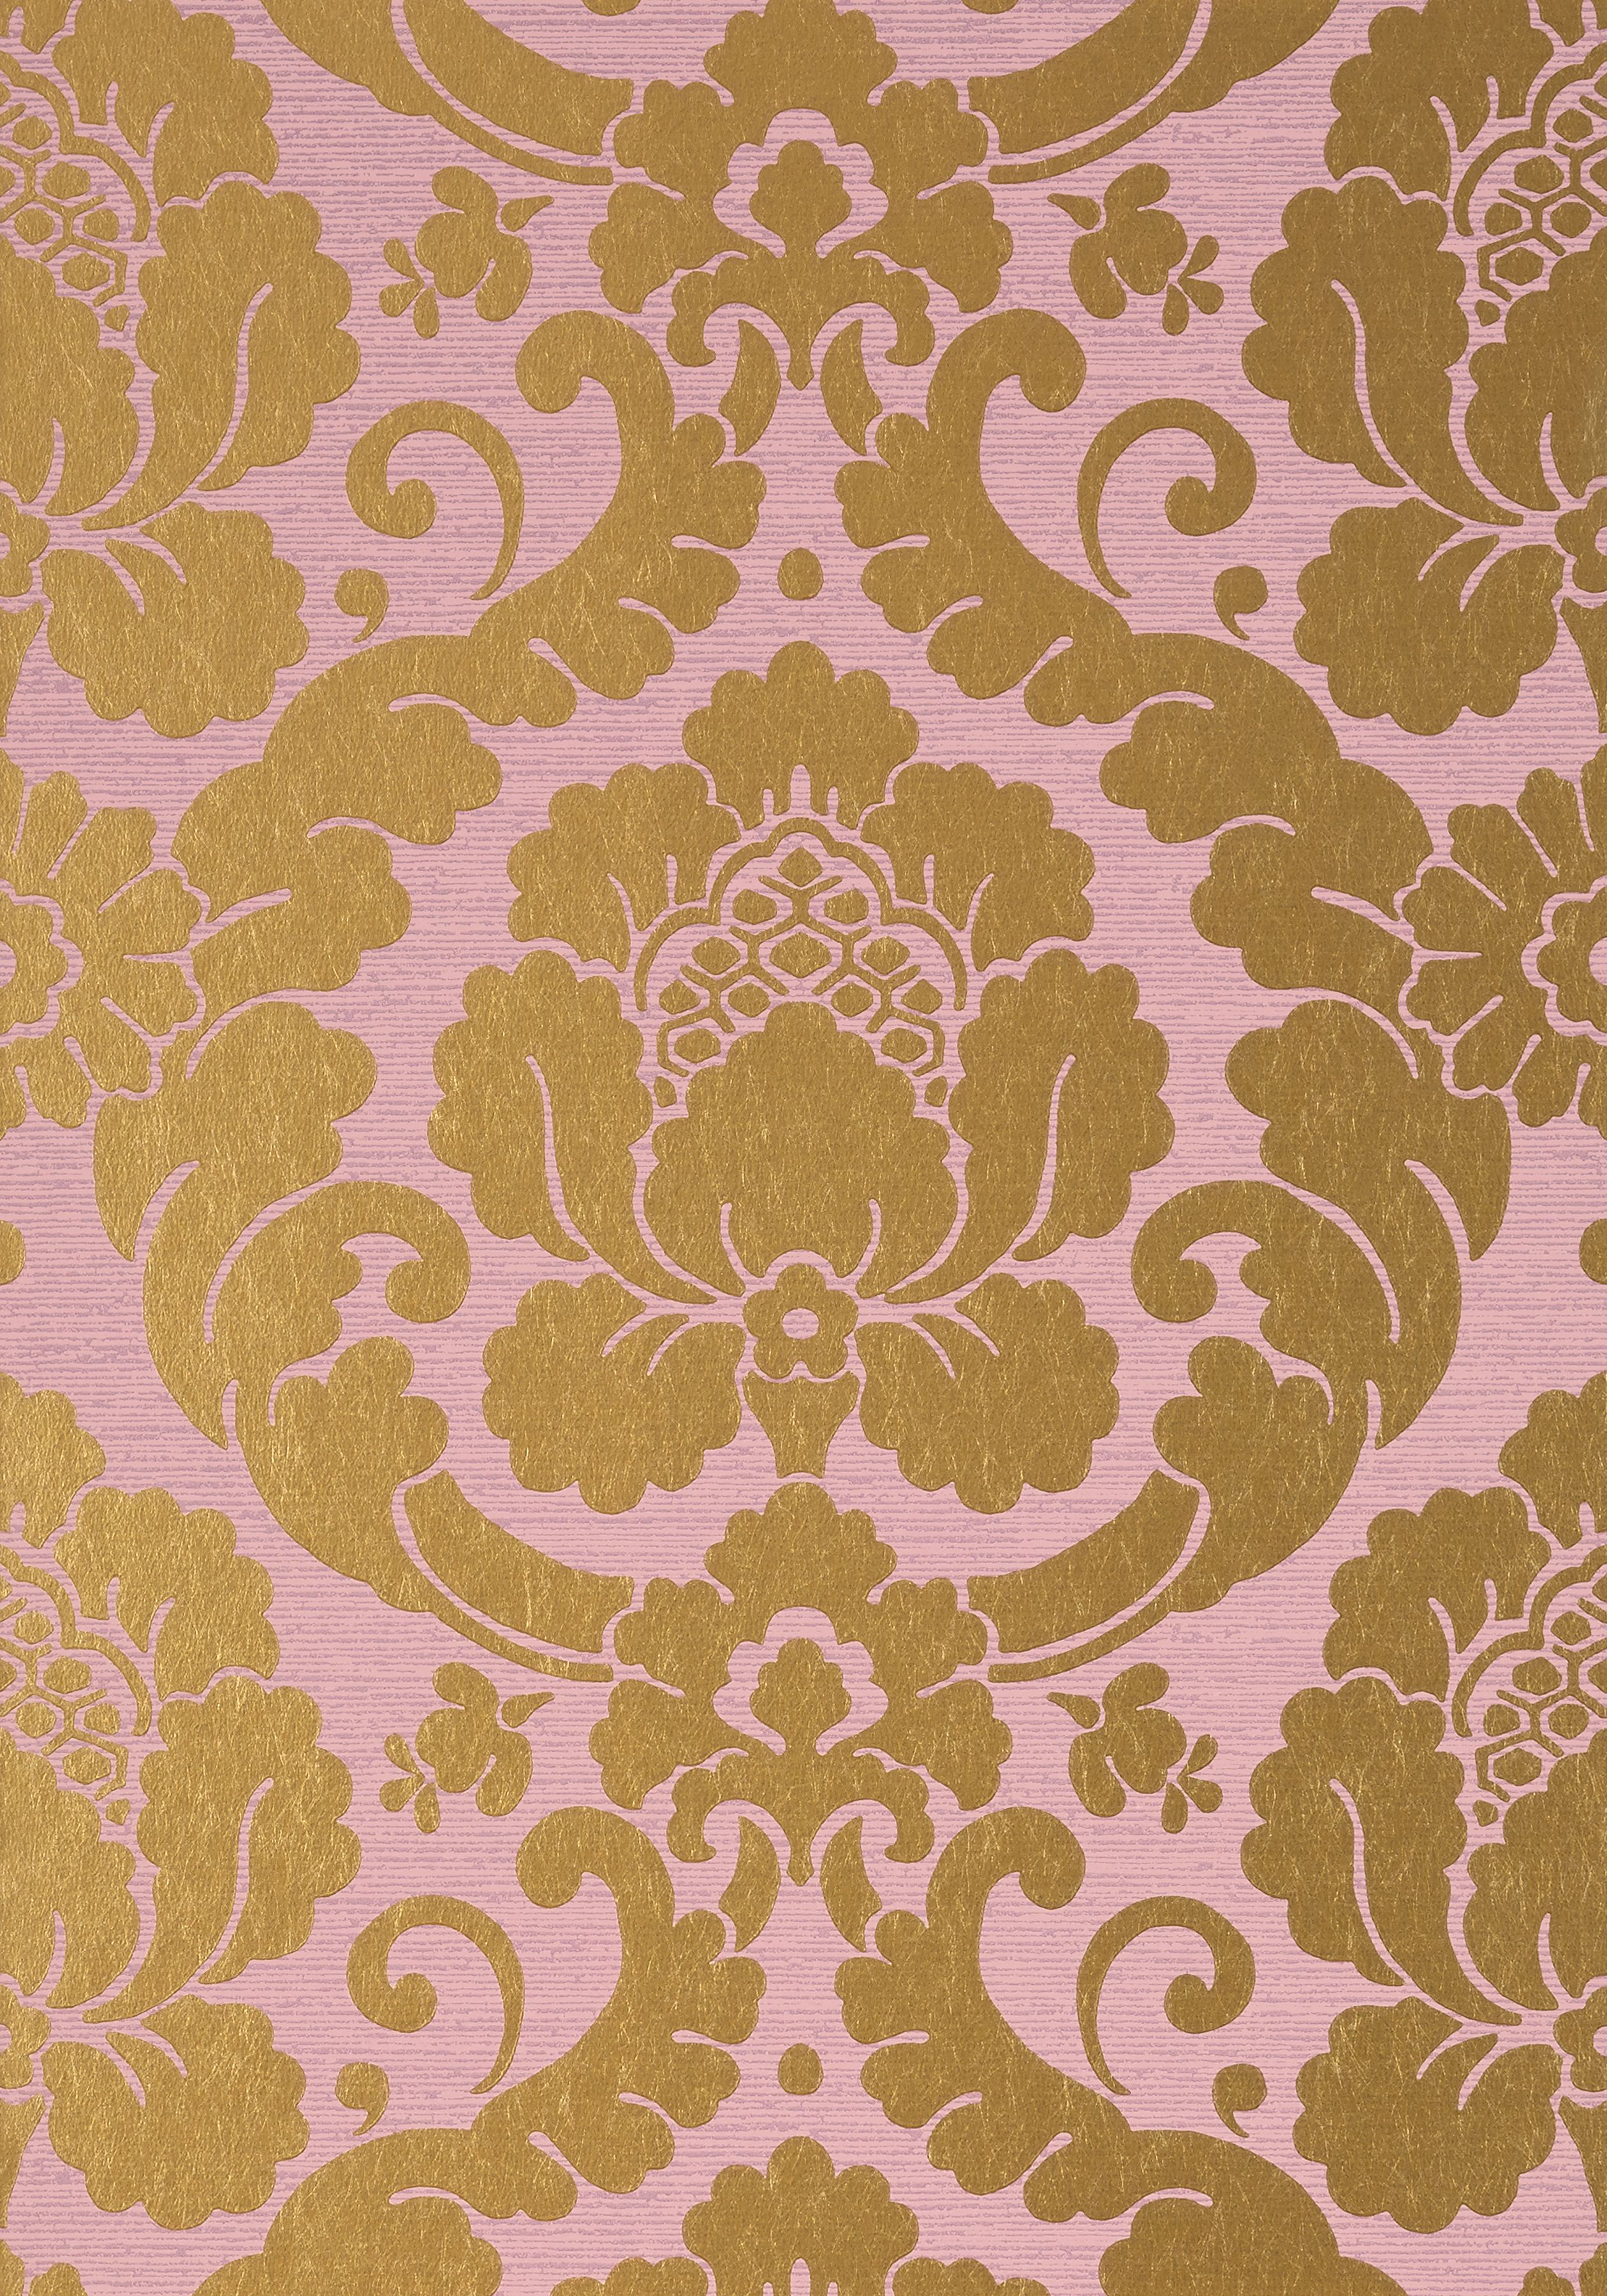 MARLOW, Lavender with Metallic Gold, AT6131, Collection